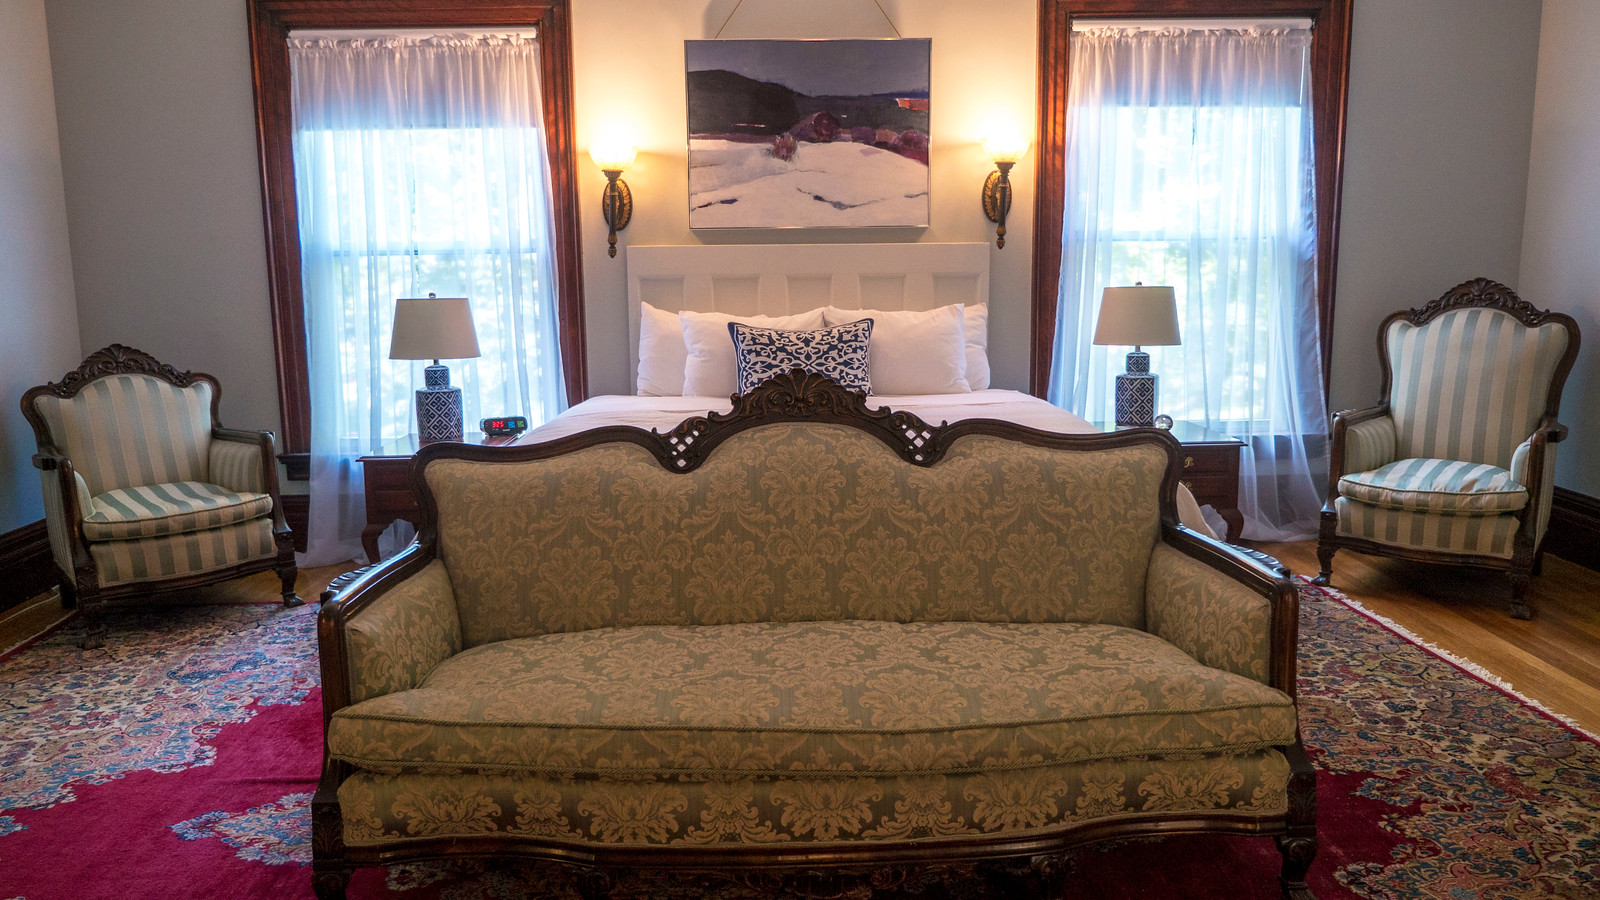 InnBuffalo - Historic Boutique Hotel in Buffalo, NY